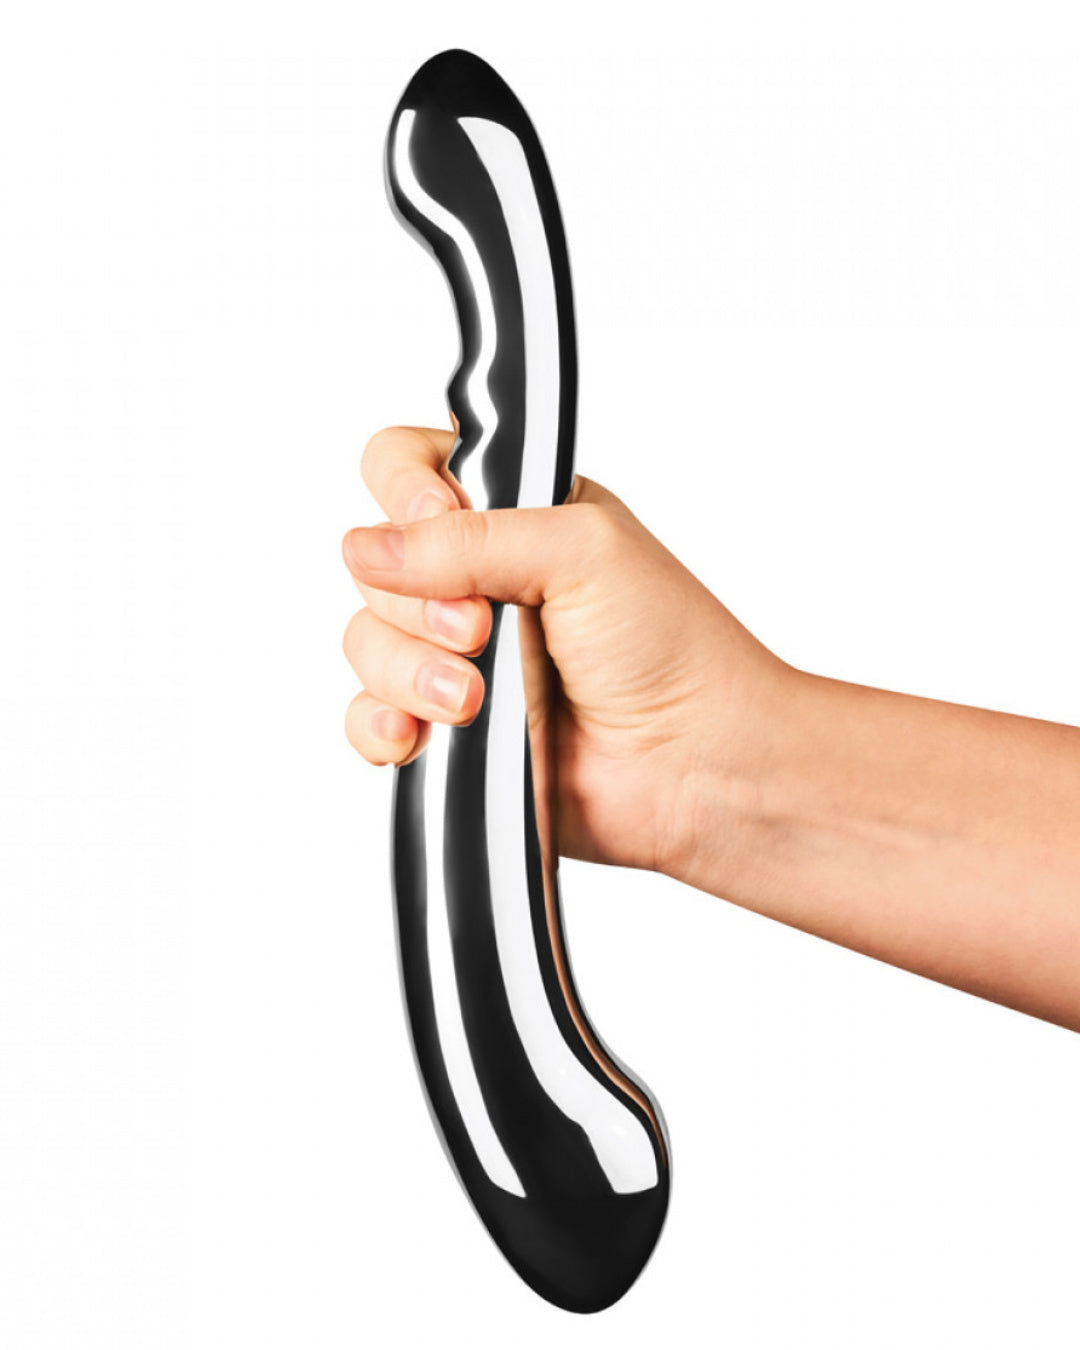 Le Wand Contour Double Ended Stainless Steel Dildo